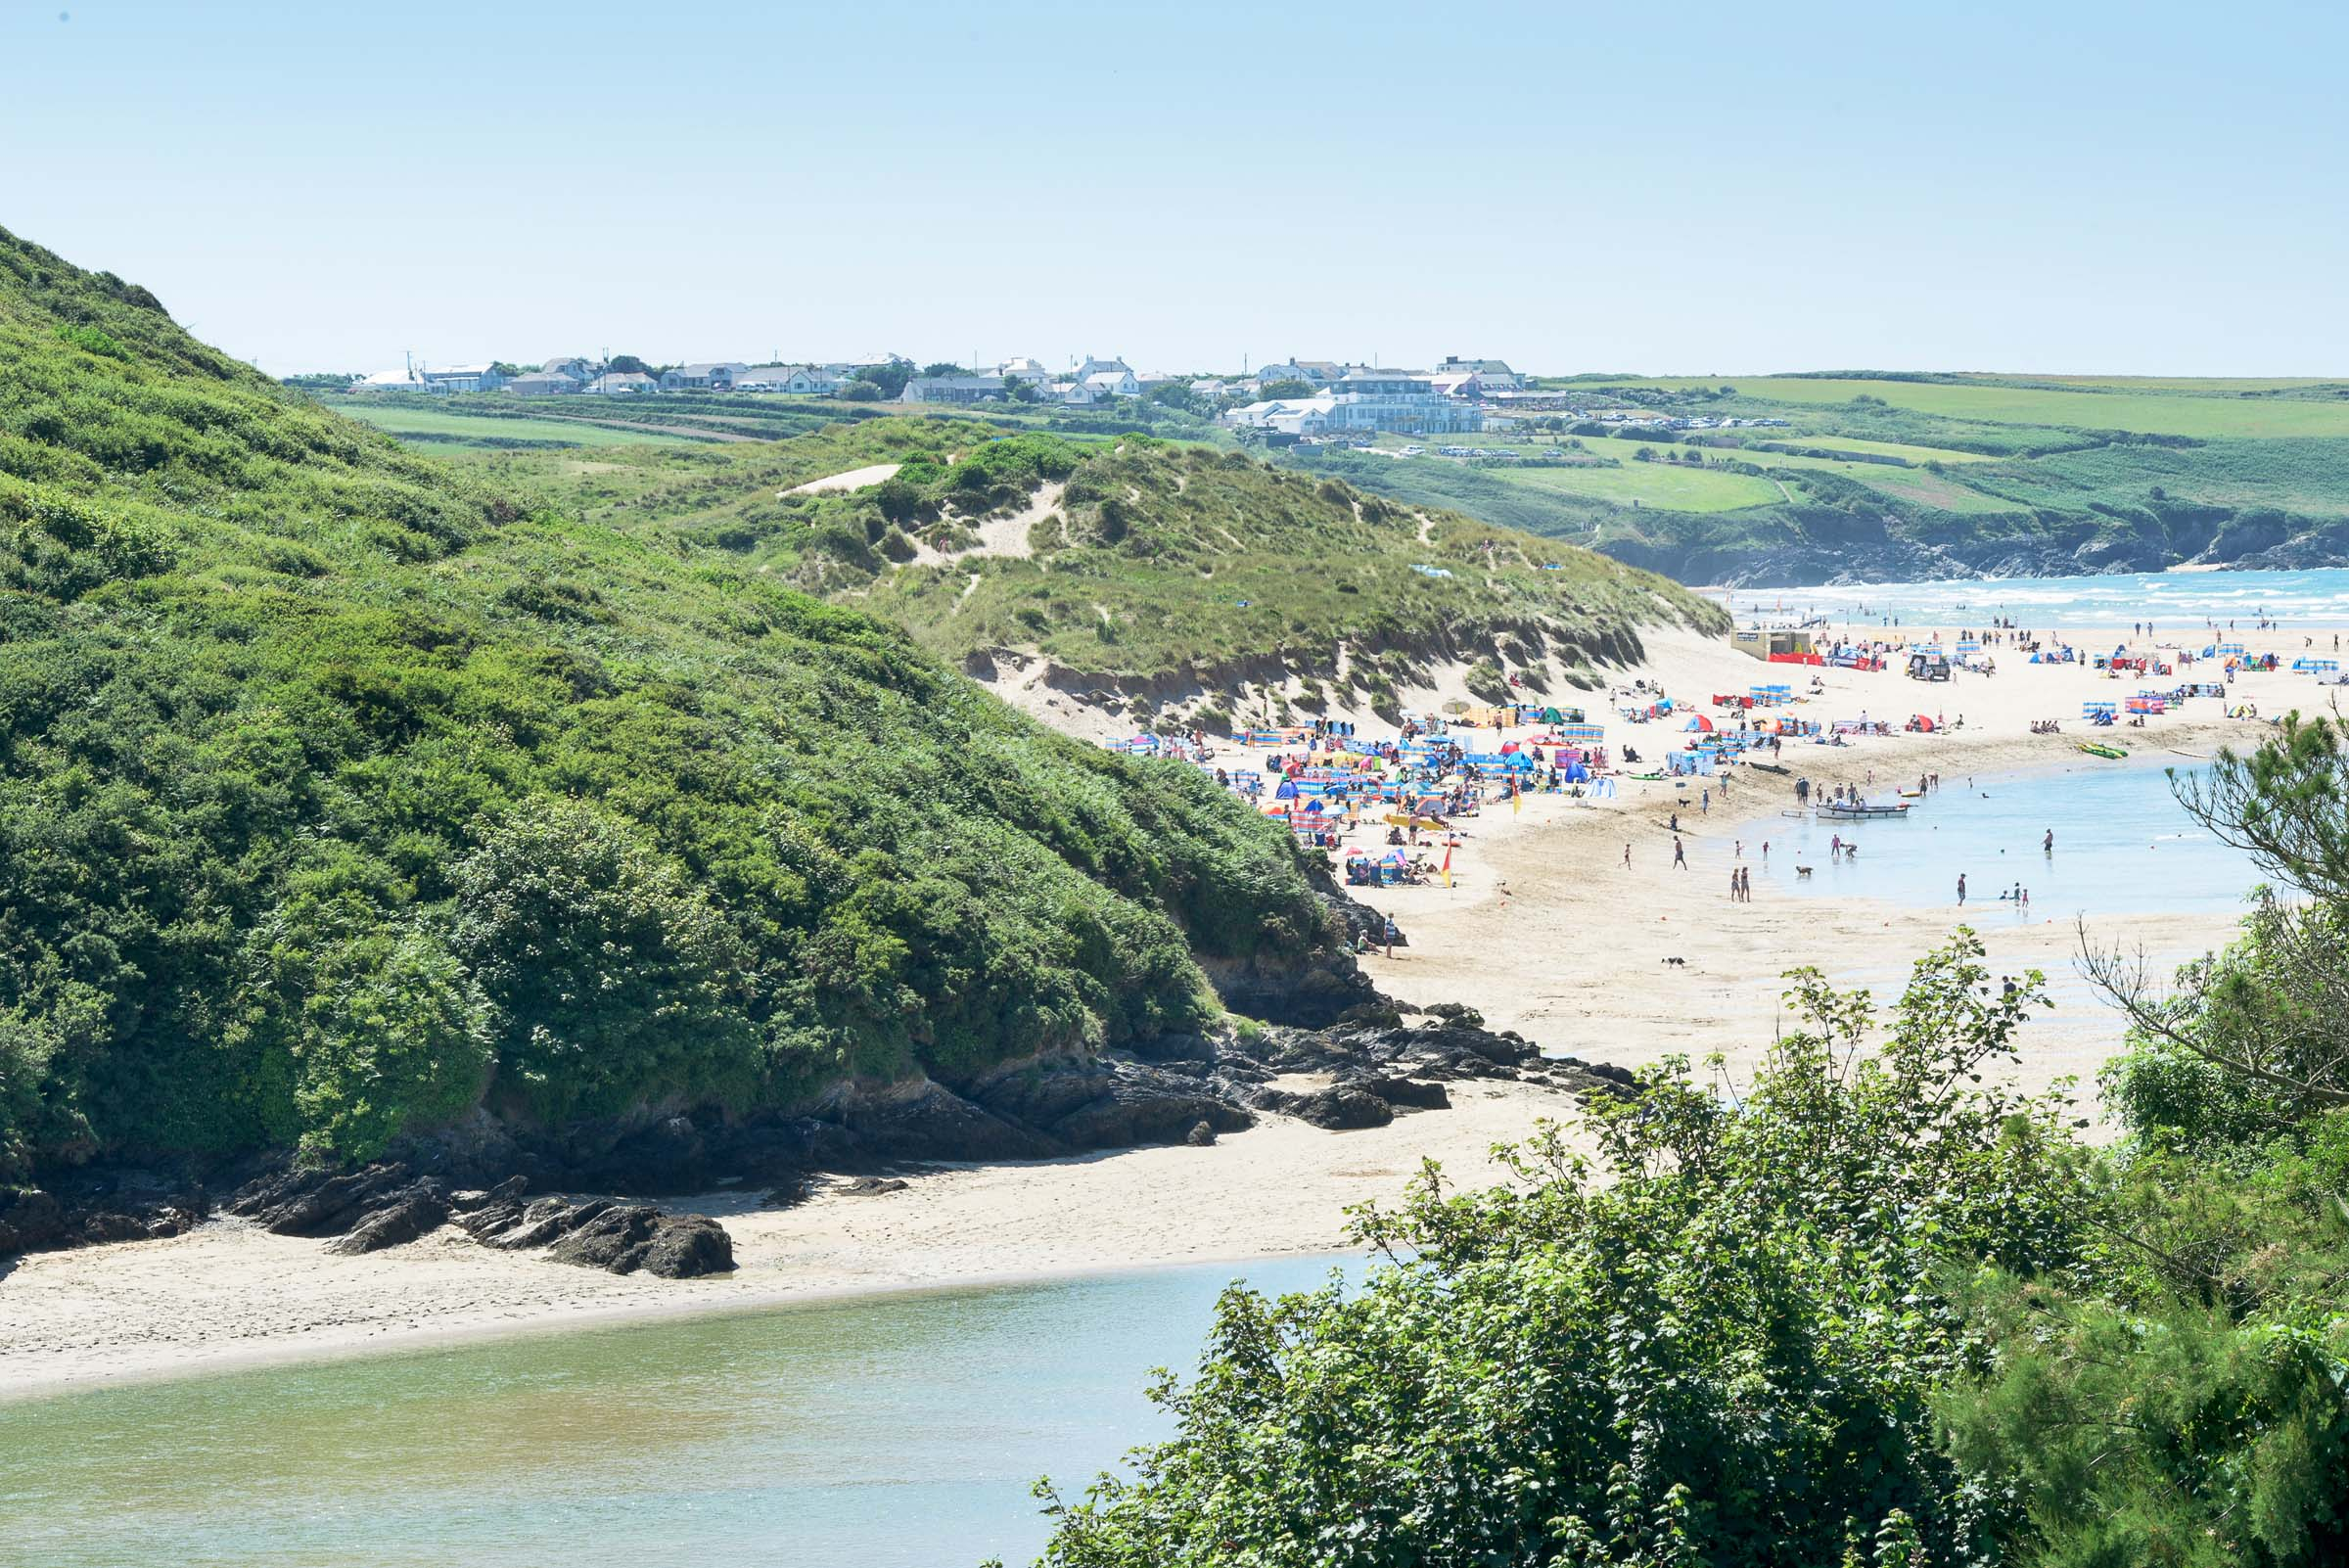 Newquay Crantock and Gannel